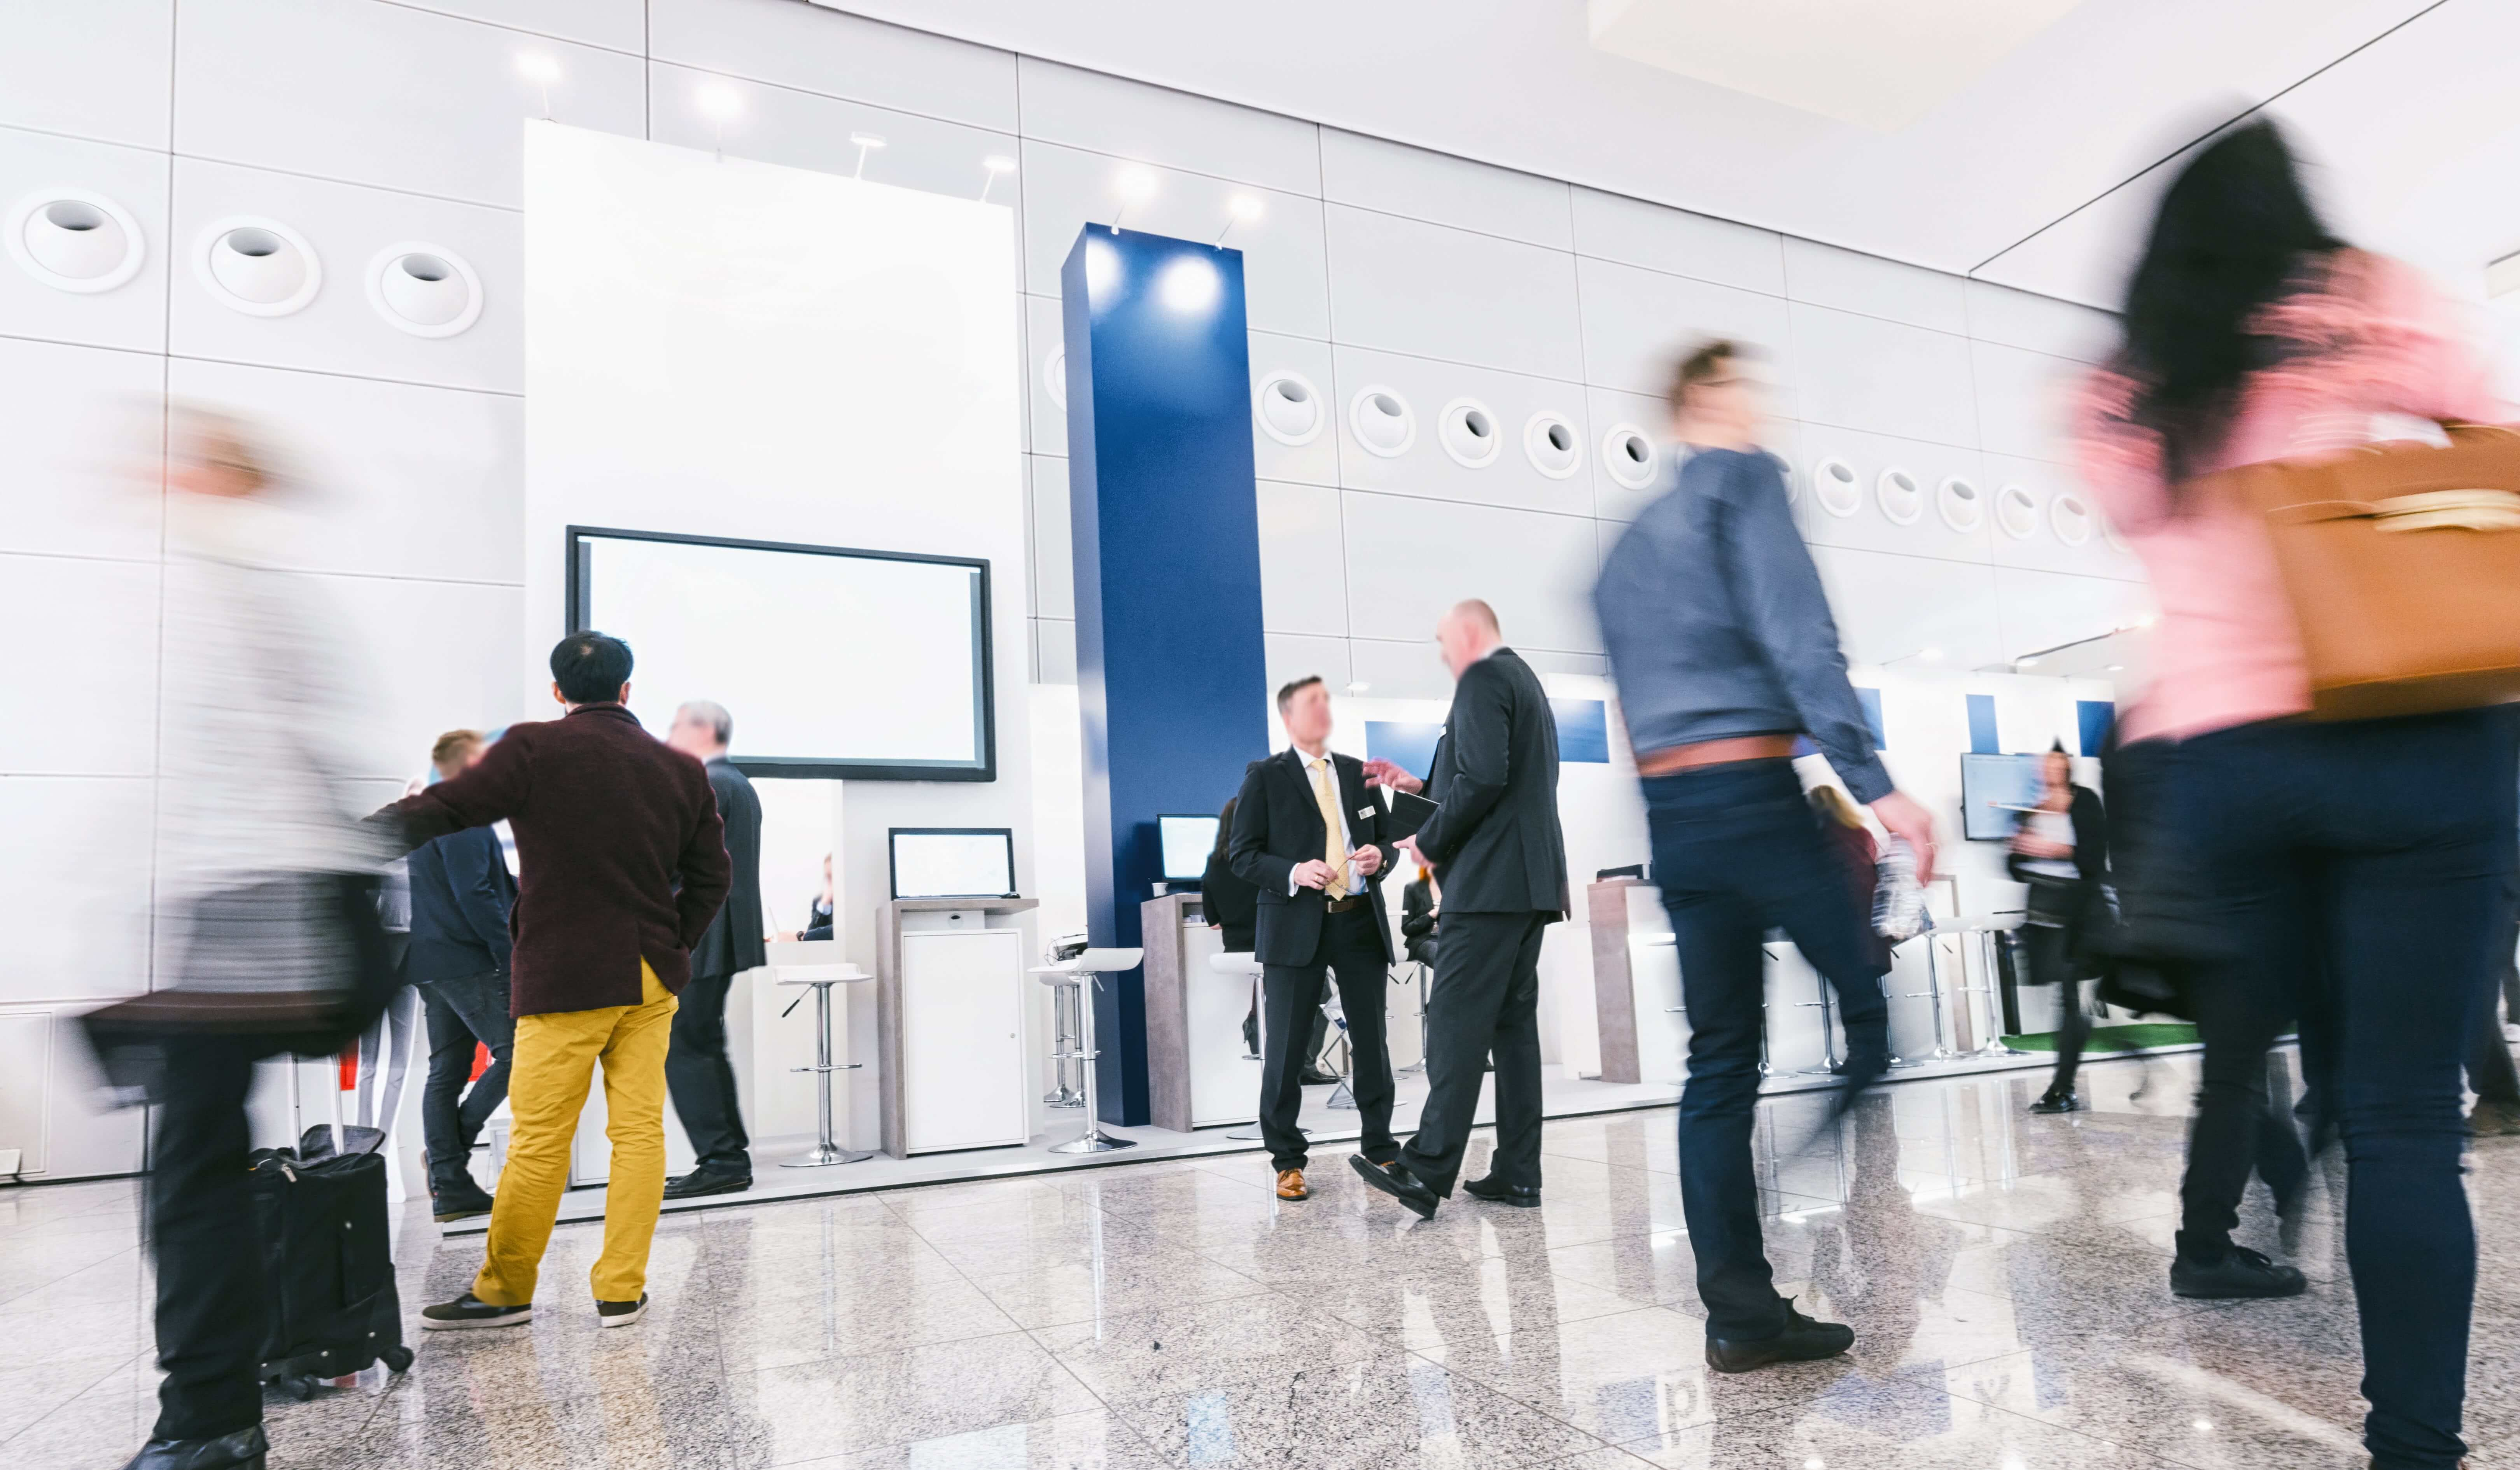 Event attendees walking through exhibit hall using event technology